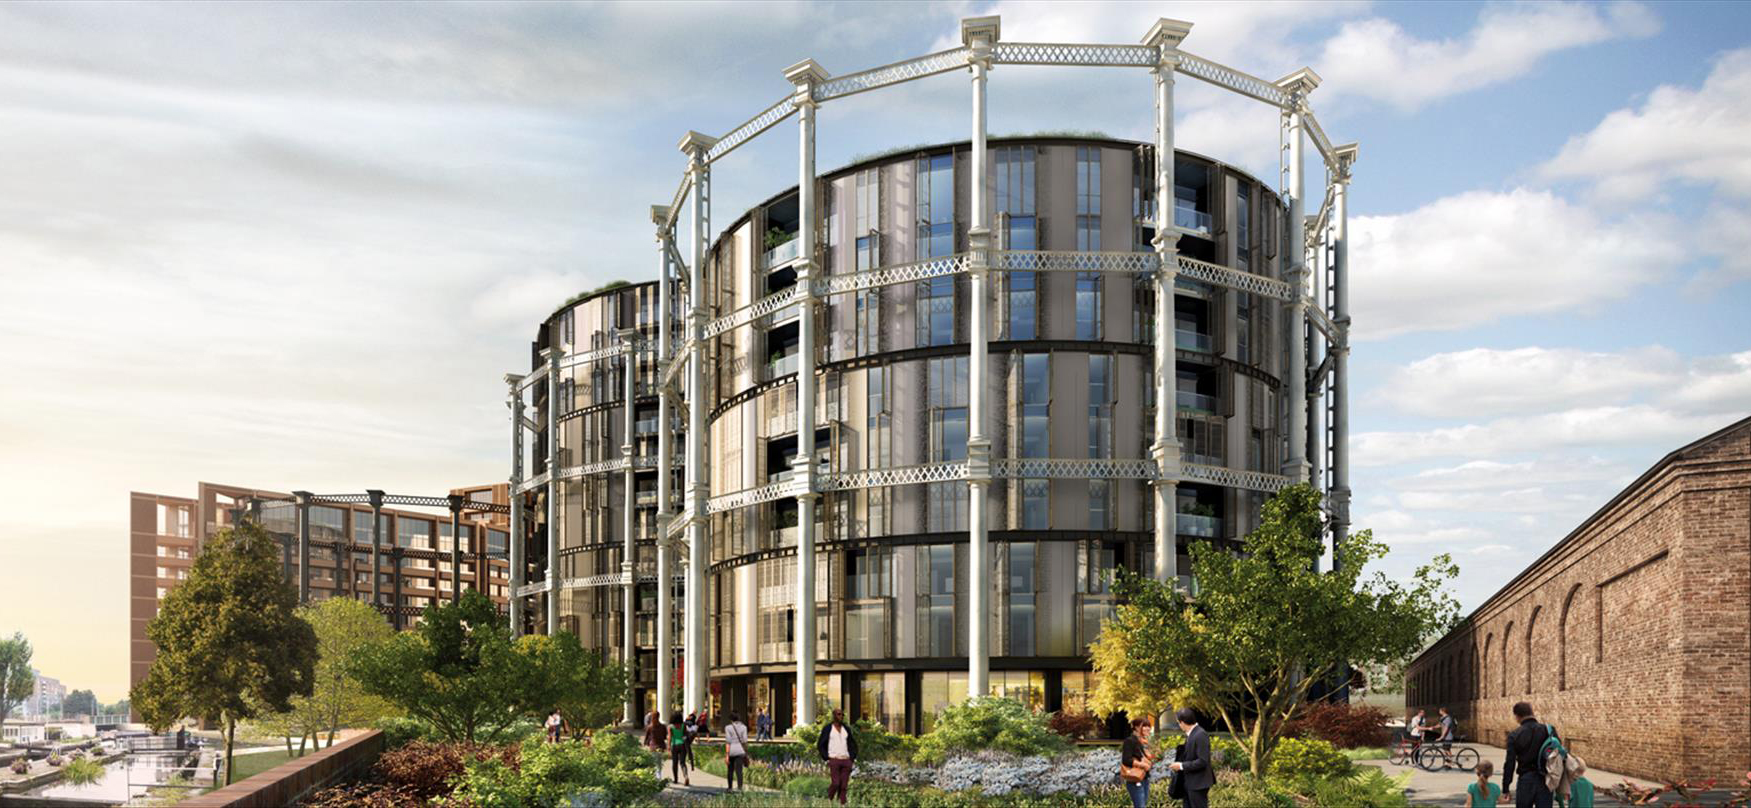 Gasholders apartments - the most unusual London homes for sale right now